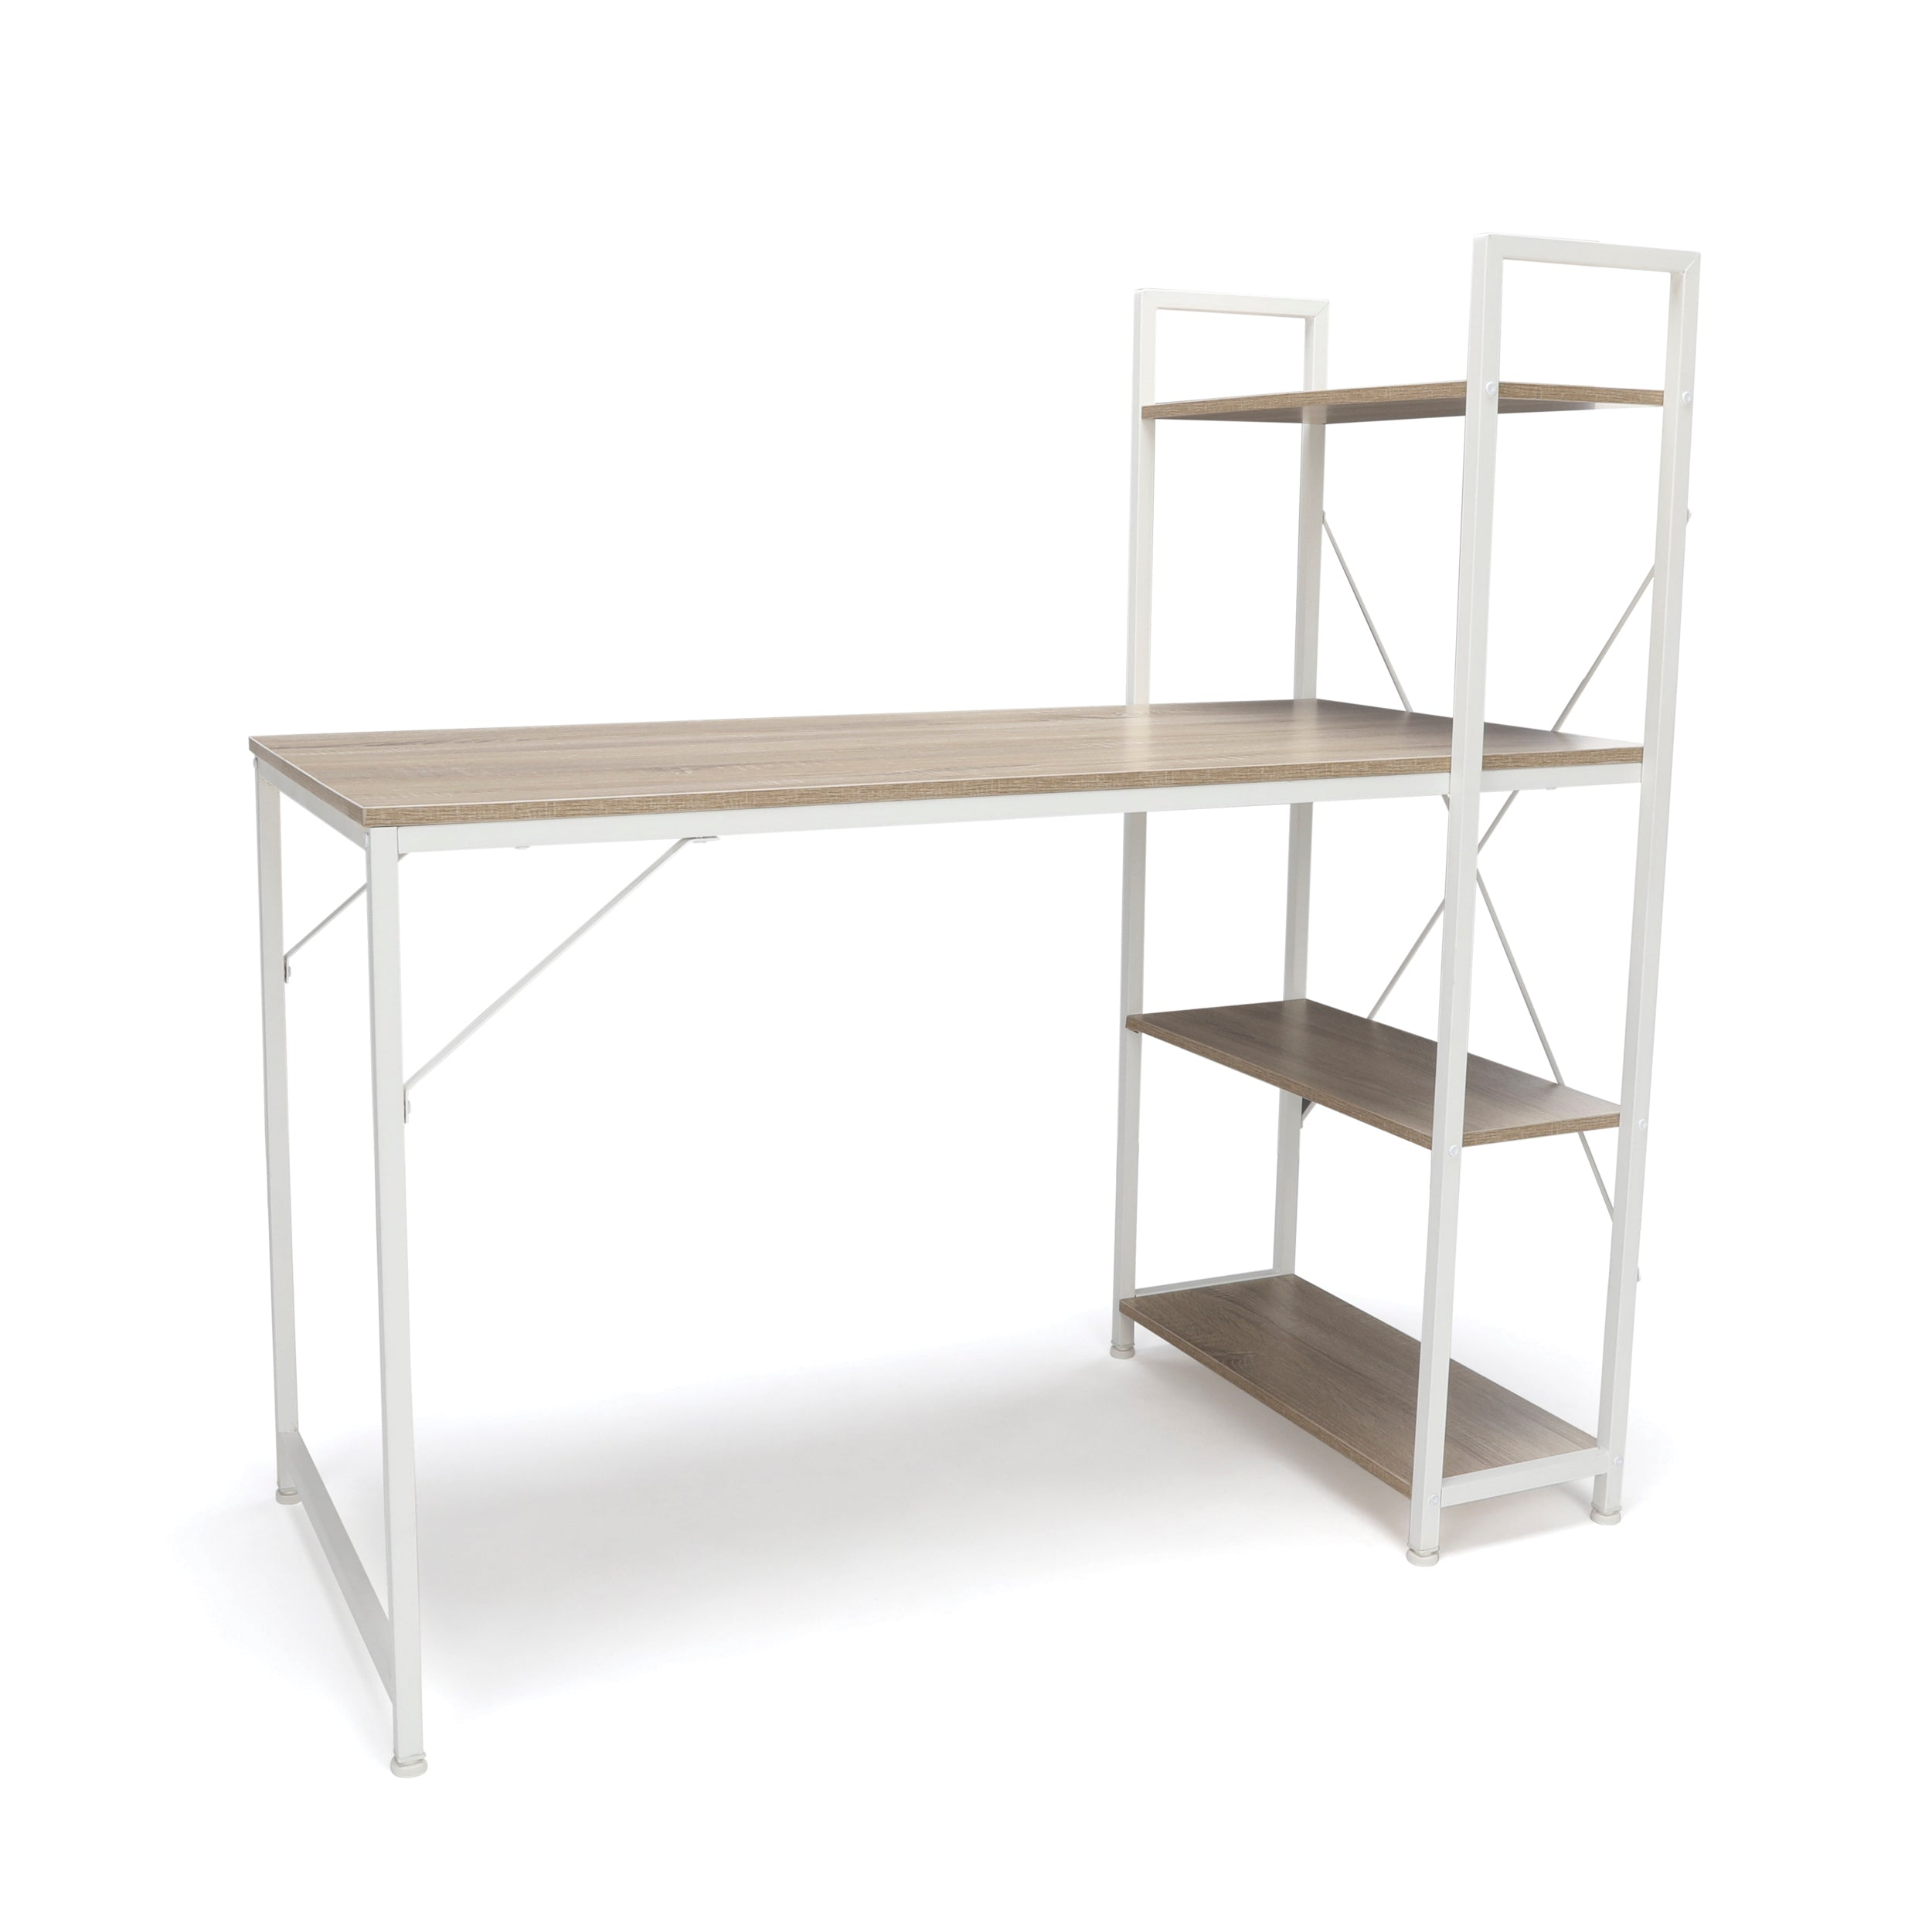 OFM Essentials Collection ESS-1004 Combination Desk with 4 Shelf Unit